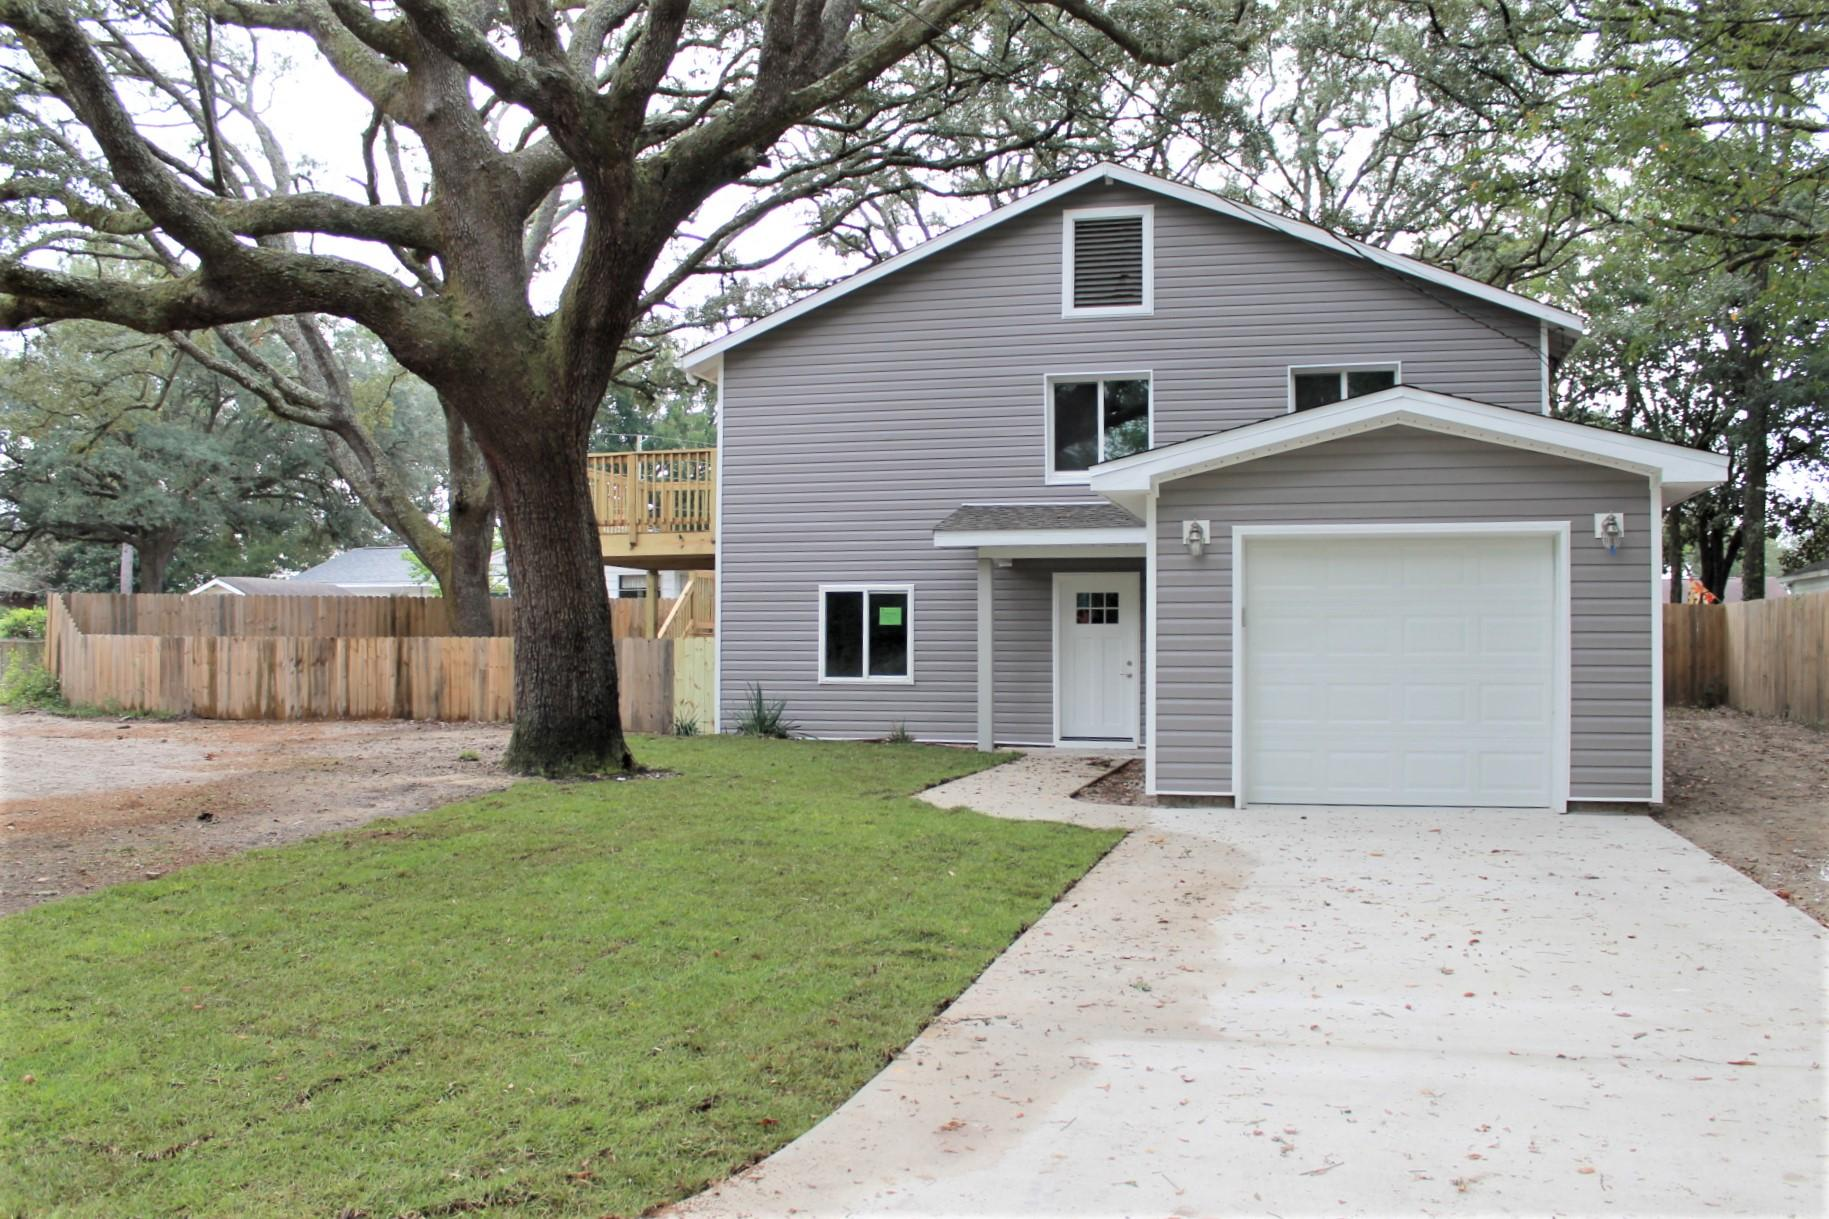 A 4 Bedroom 4 Bedroom Powell S/d To Niceville Home